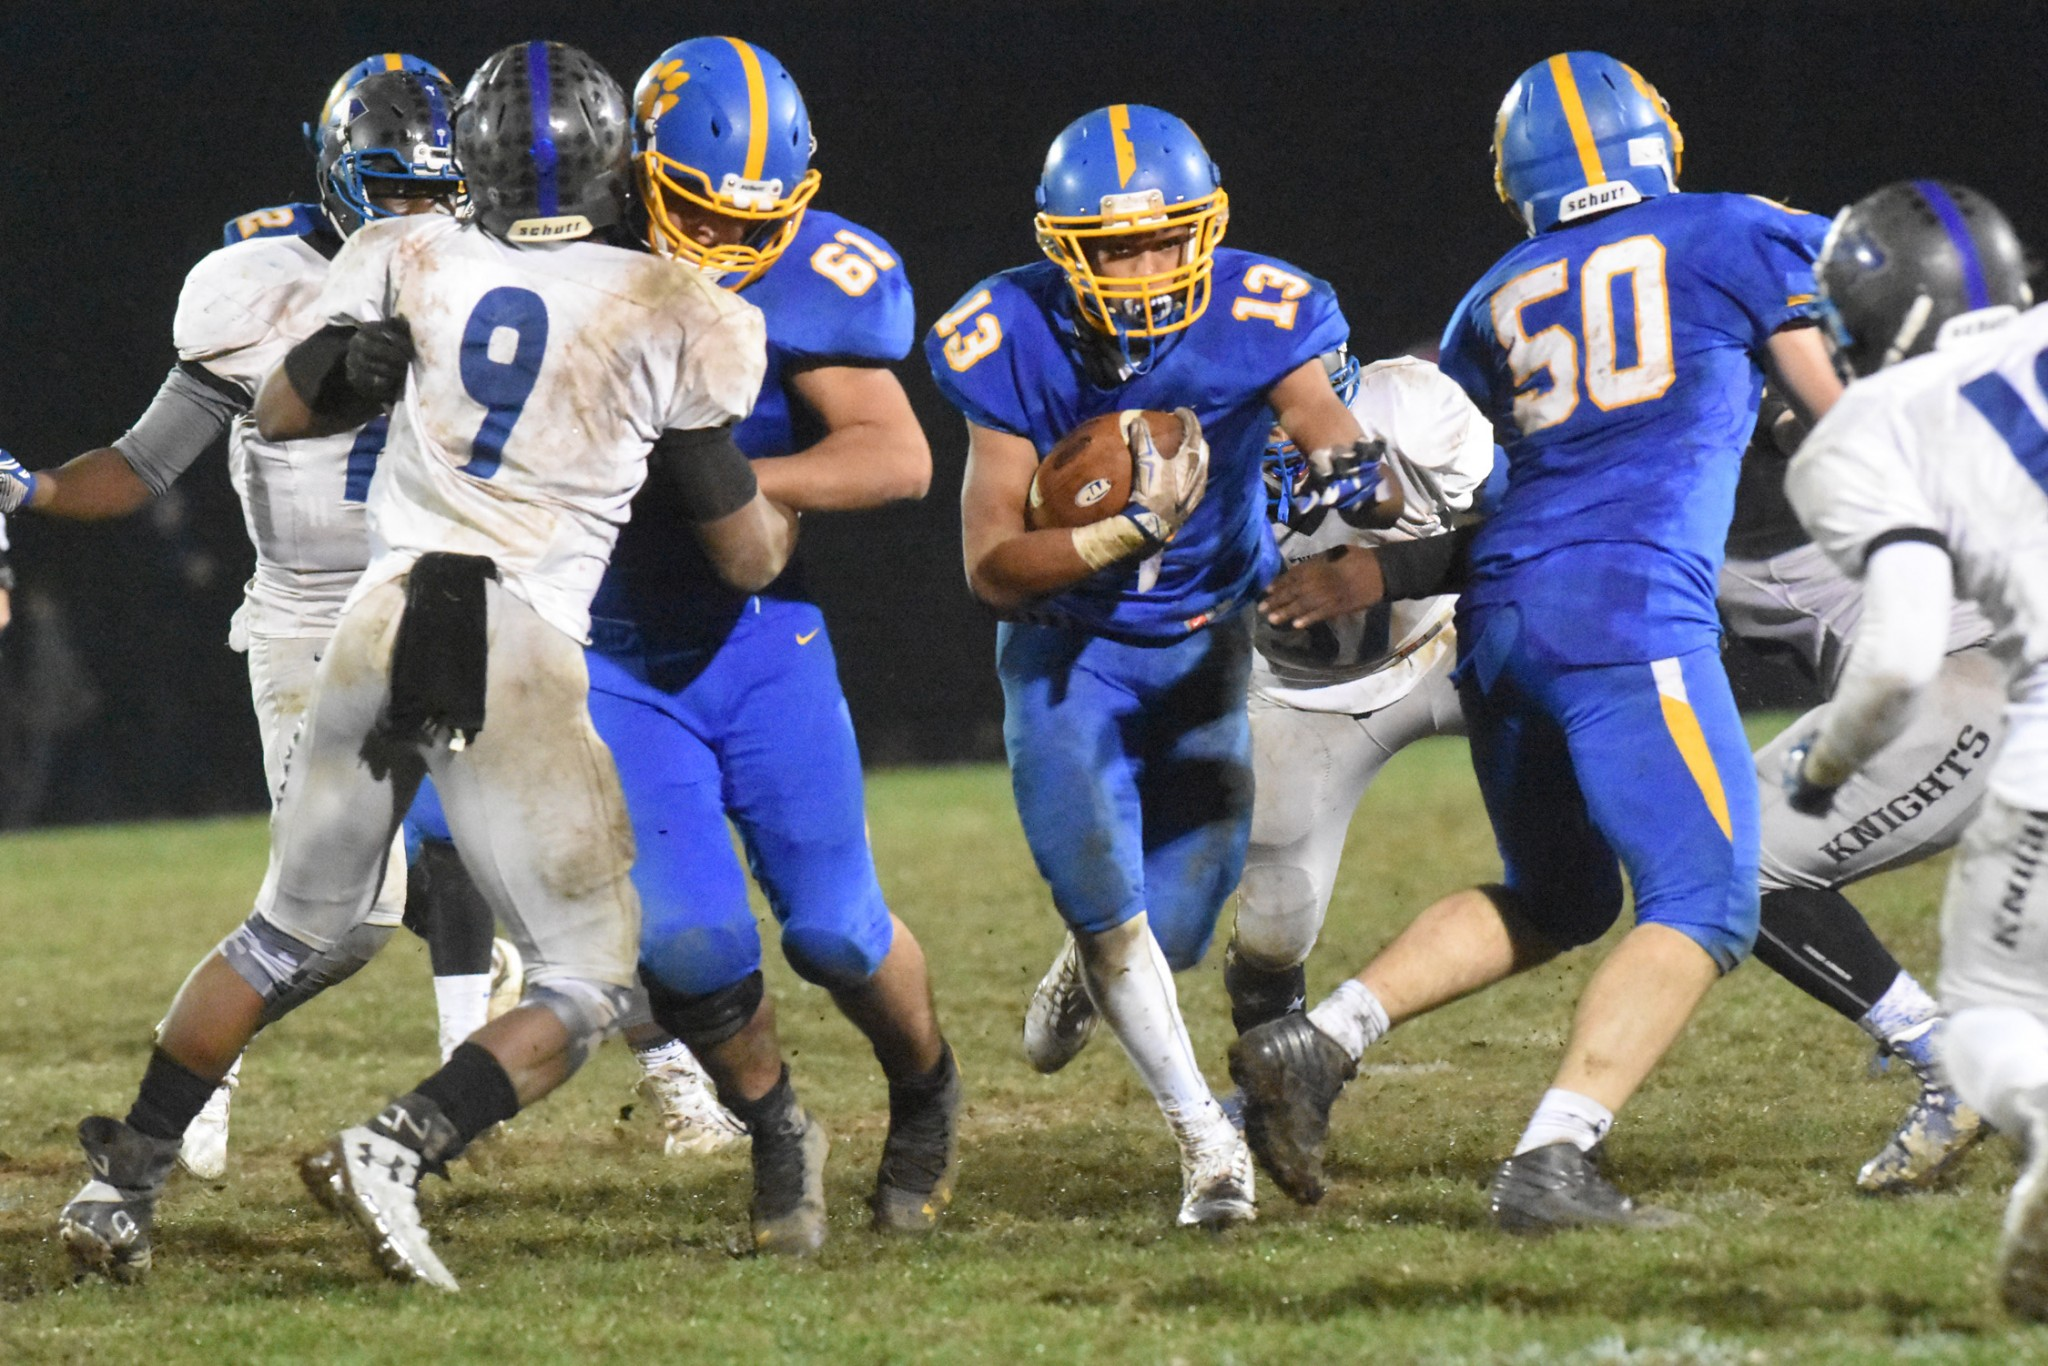 Springfield's Ja'Den McKenzie, who rushed for 167 yards and two touchdowns, breaks through the line for a big gain against Academy Park. (Digital First Media/Anne Neborak)